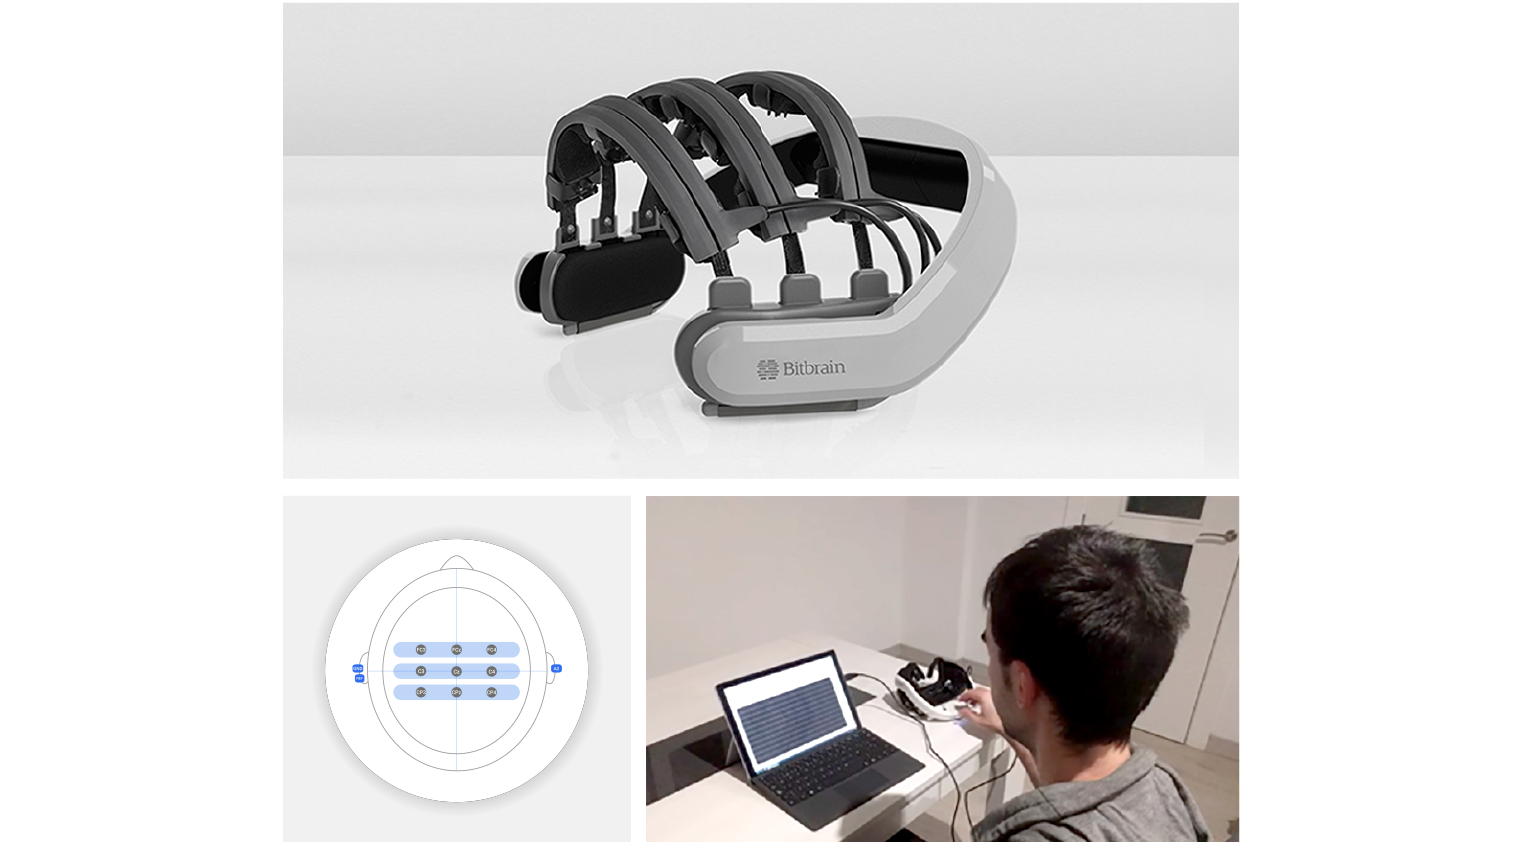 Hero dry eeg headset for neurorehabilitation